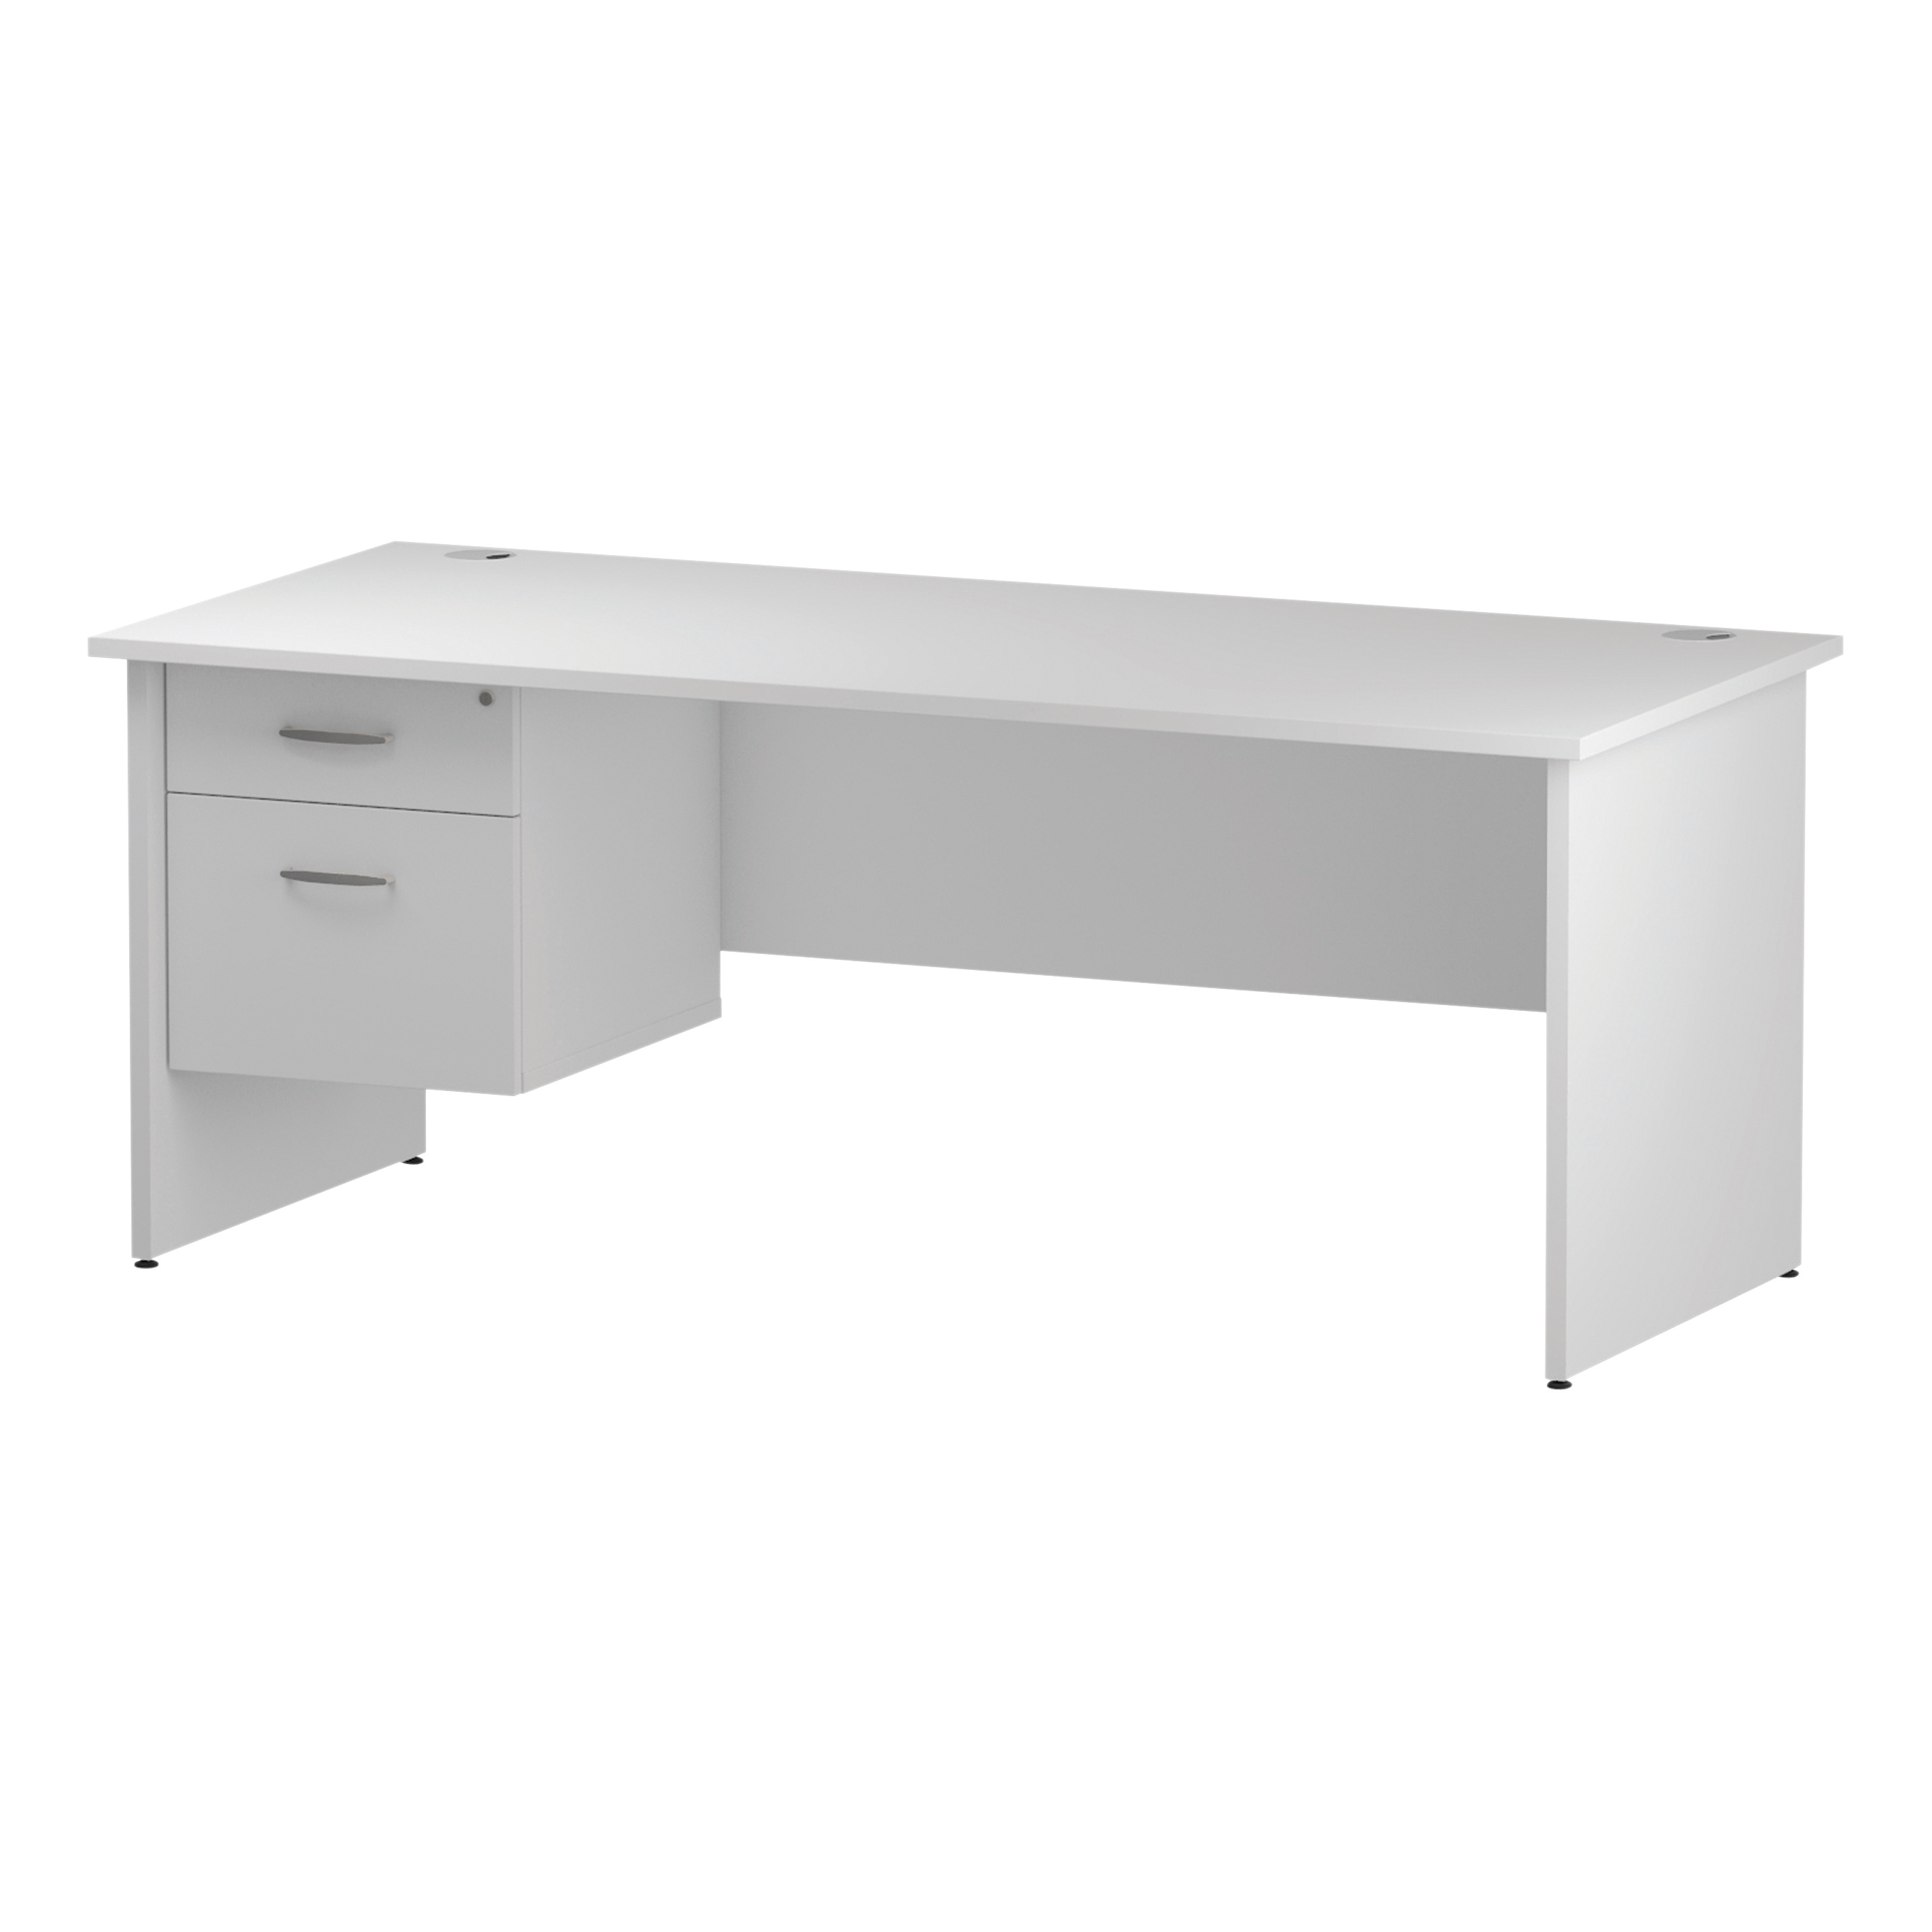 Trexus Rectangular Desk Panel End Leg 1800x800mm Fixed Pedestal 2 Drawers White Ref I002253